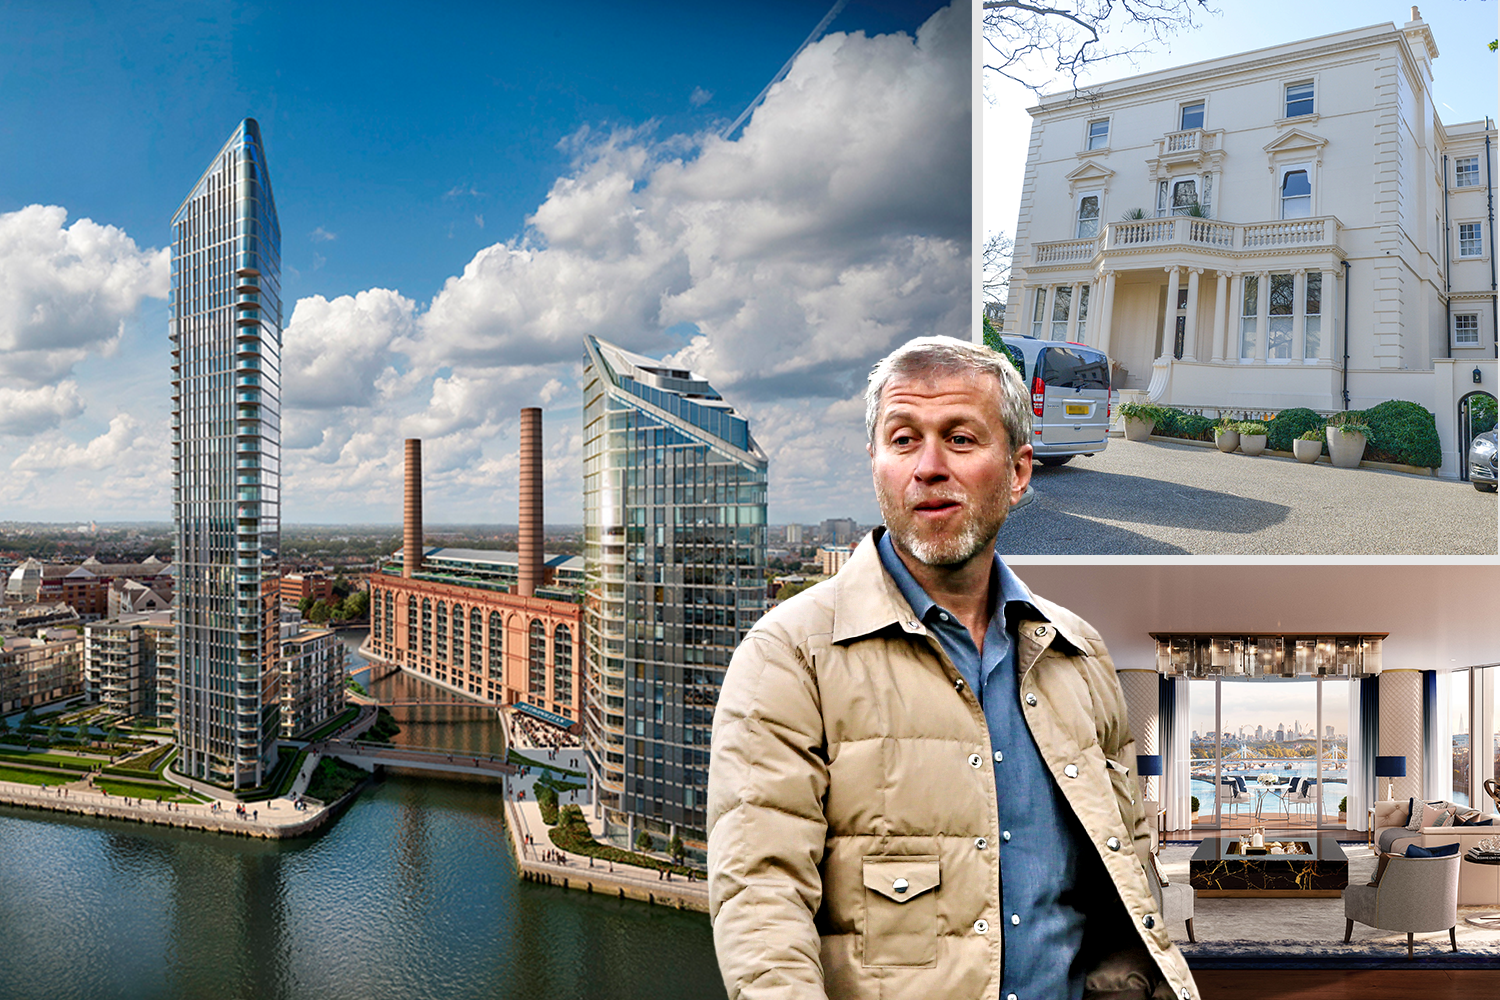 Roman Abramovich is fitting out the penthouse, despite his visa problems. He bought a mansion in Kensington Palace Gardens in 2011